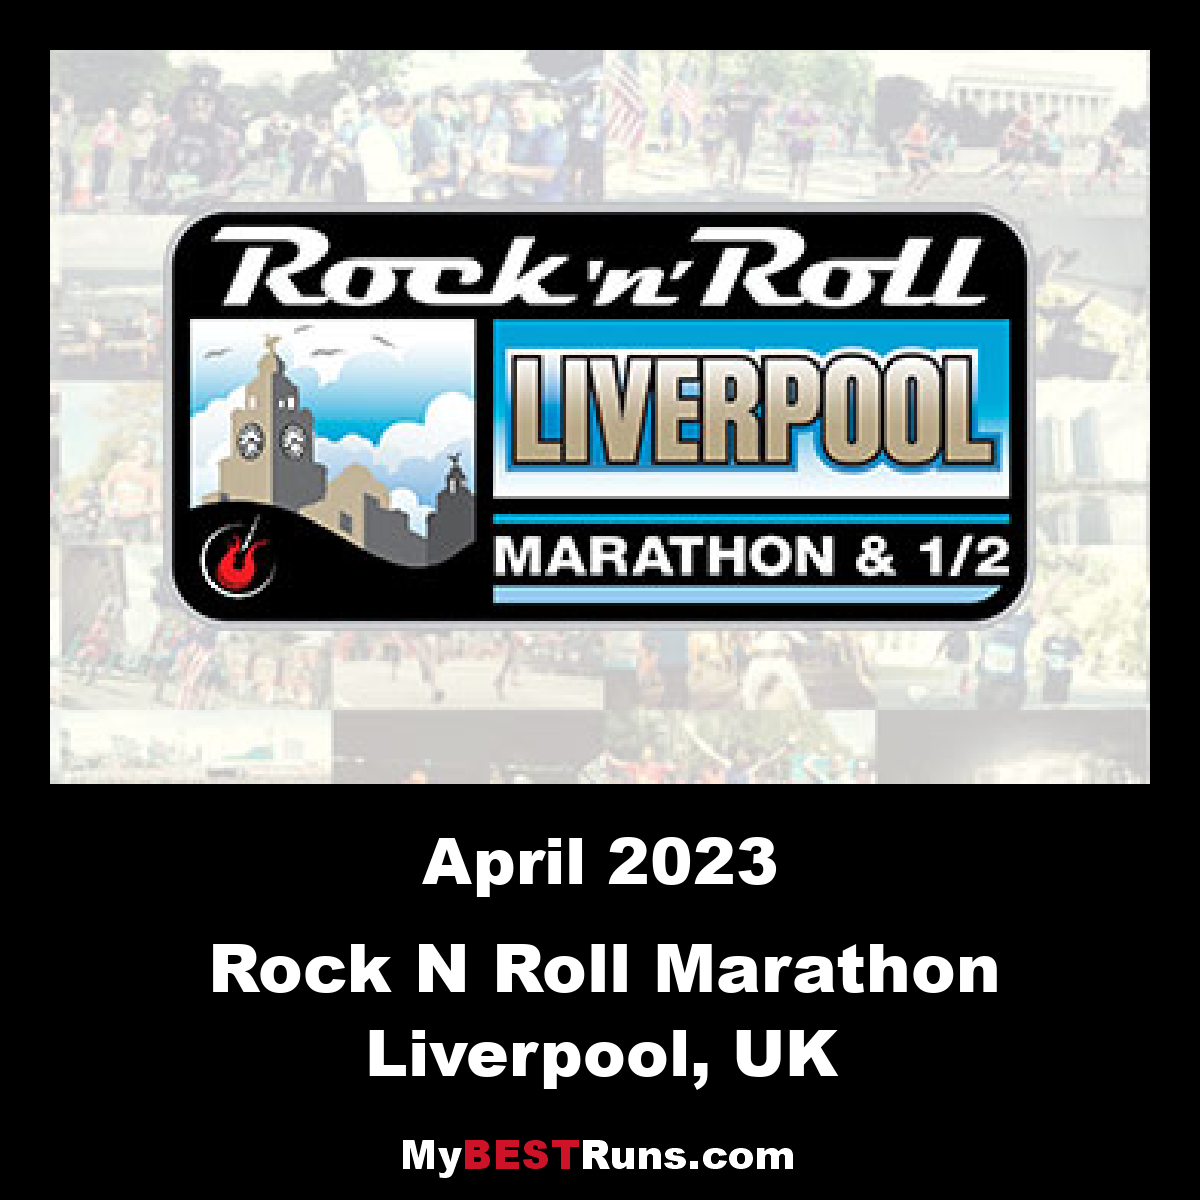 ROCK 'N' ROLL LIVERPOOL